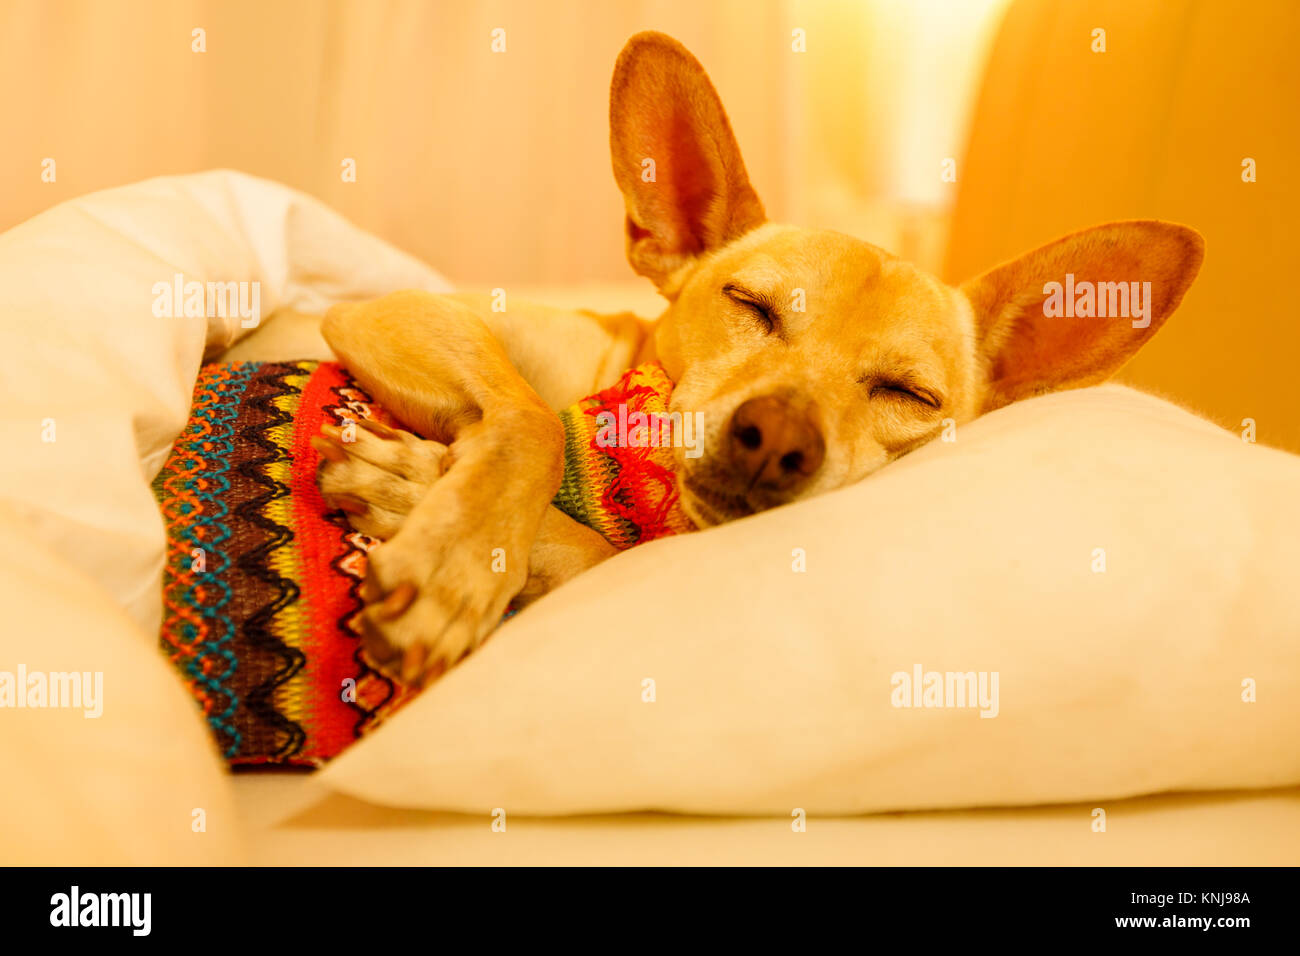 sick and ill chihuahua  dog resting  having  a siesta or sleeping  with hot water bottle Stock Photo